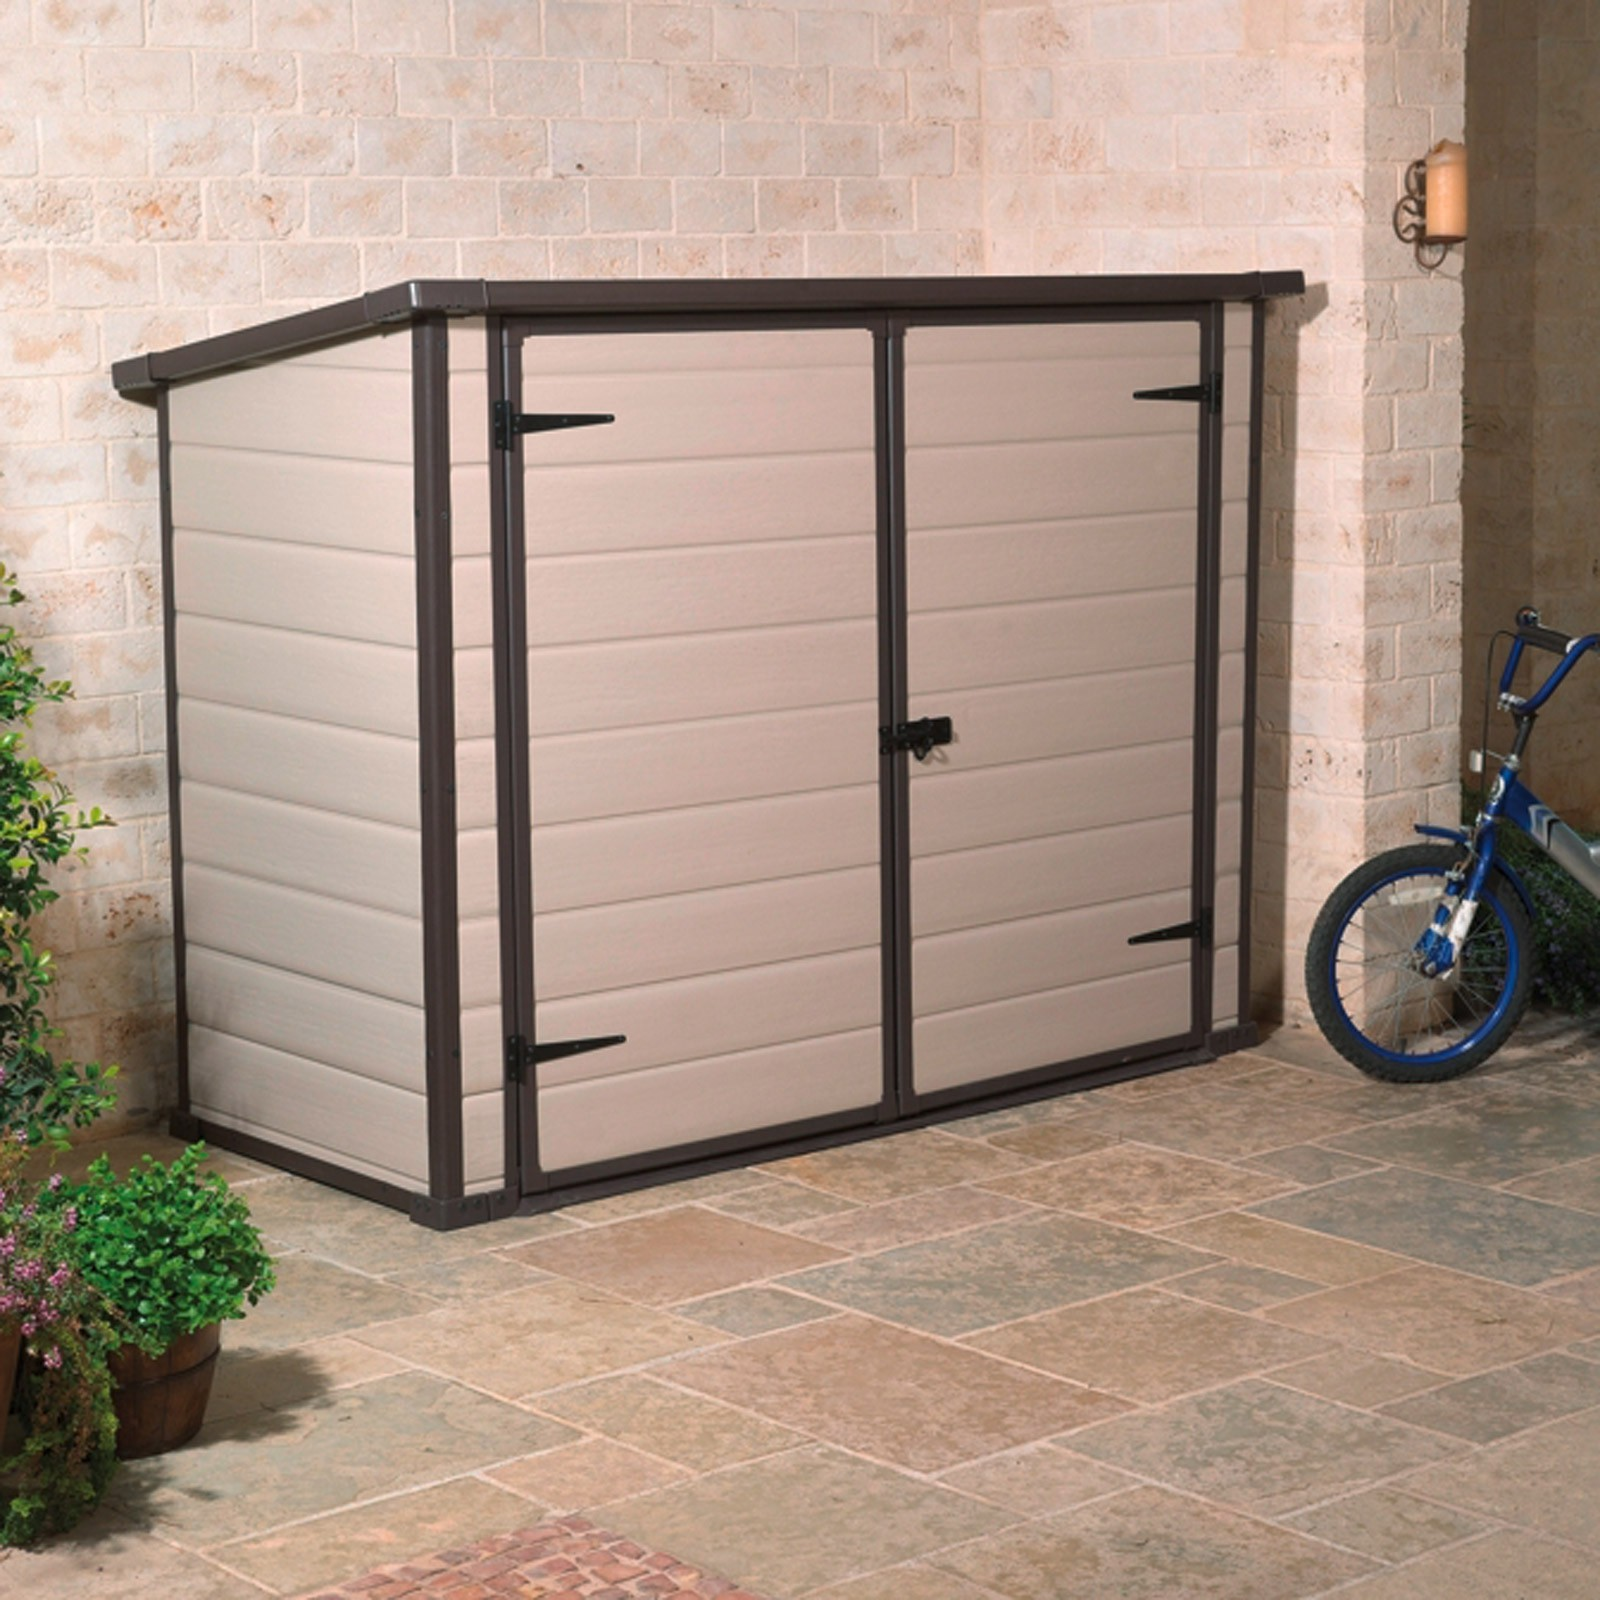 aufbewahrungsbox universalbox fahrradbox bike more. Black Bedroom Furniture Sets. Home Design Ideas